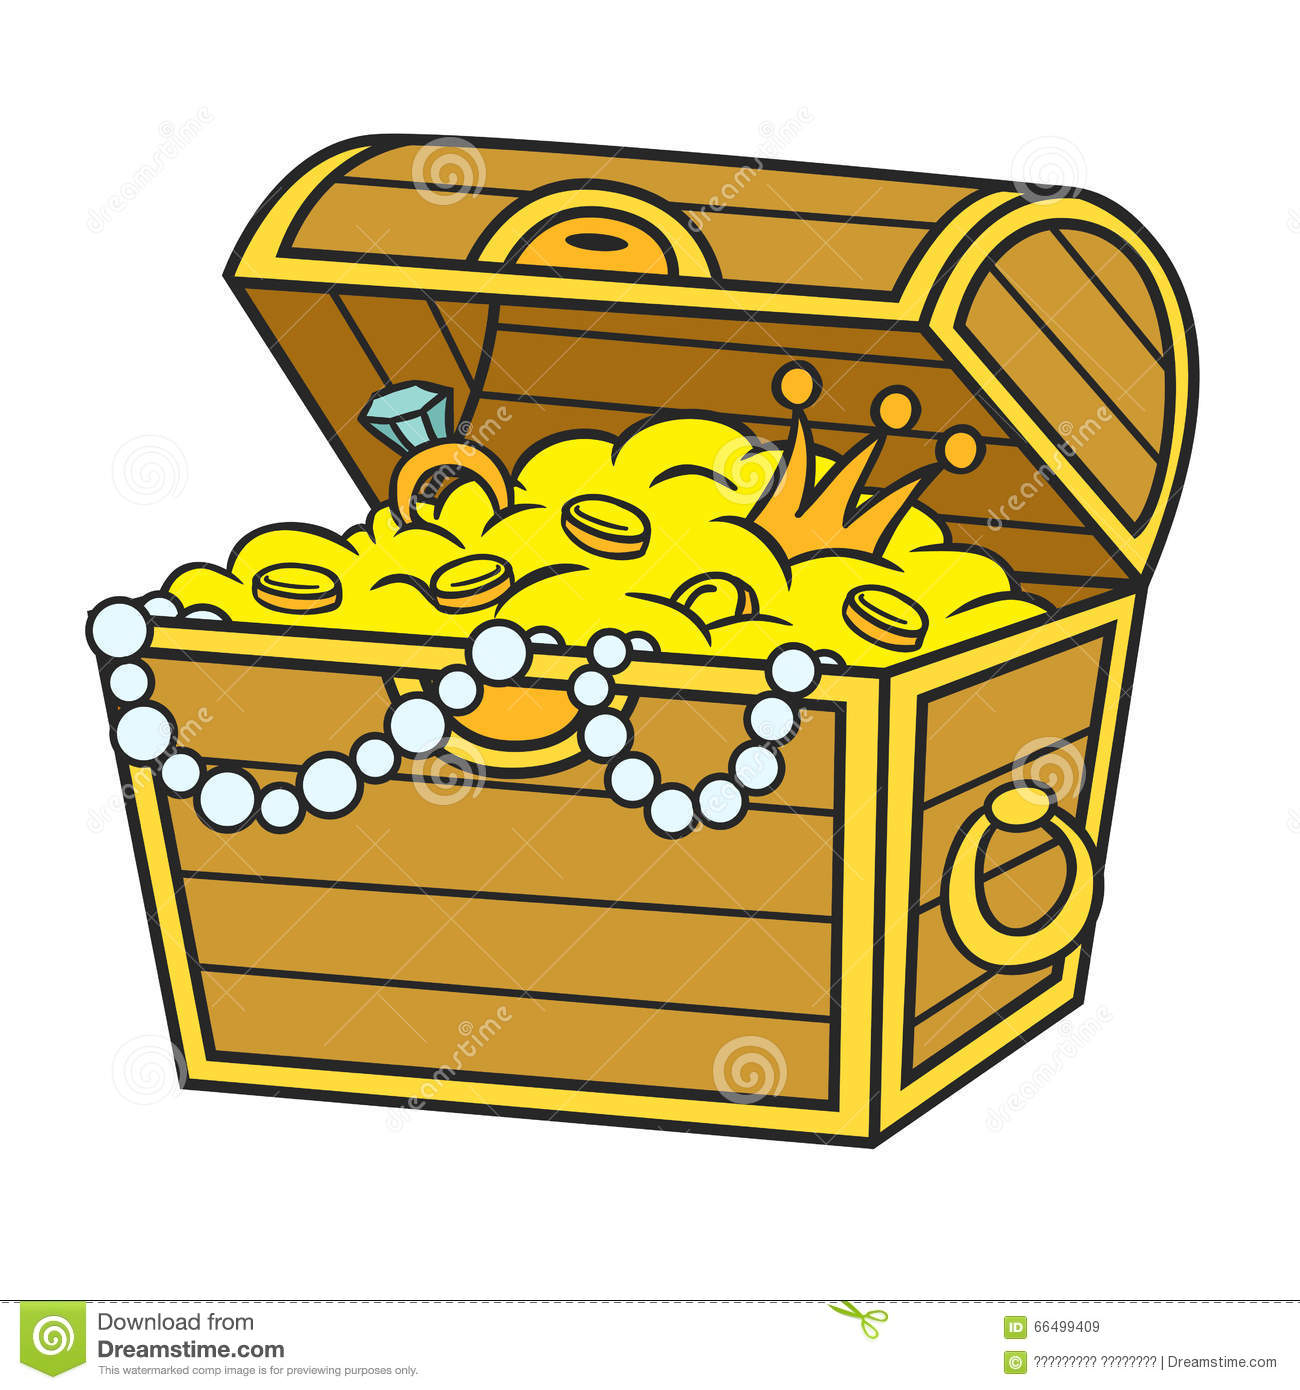 karikatur piraten schatz vektor abbildung illustration treasure chests clip art open treasure box clipart